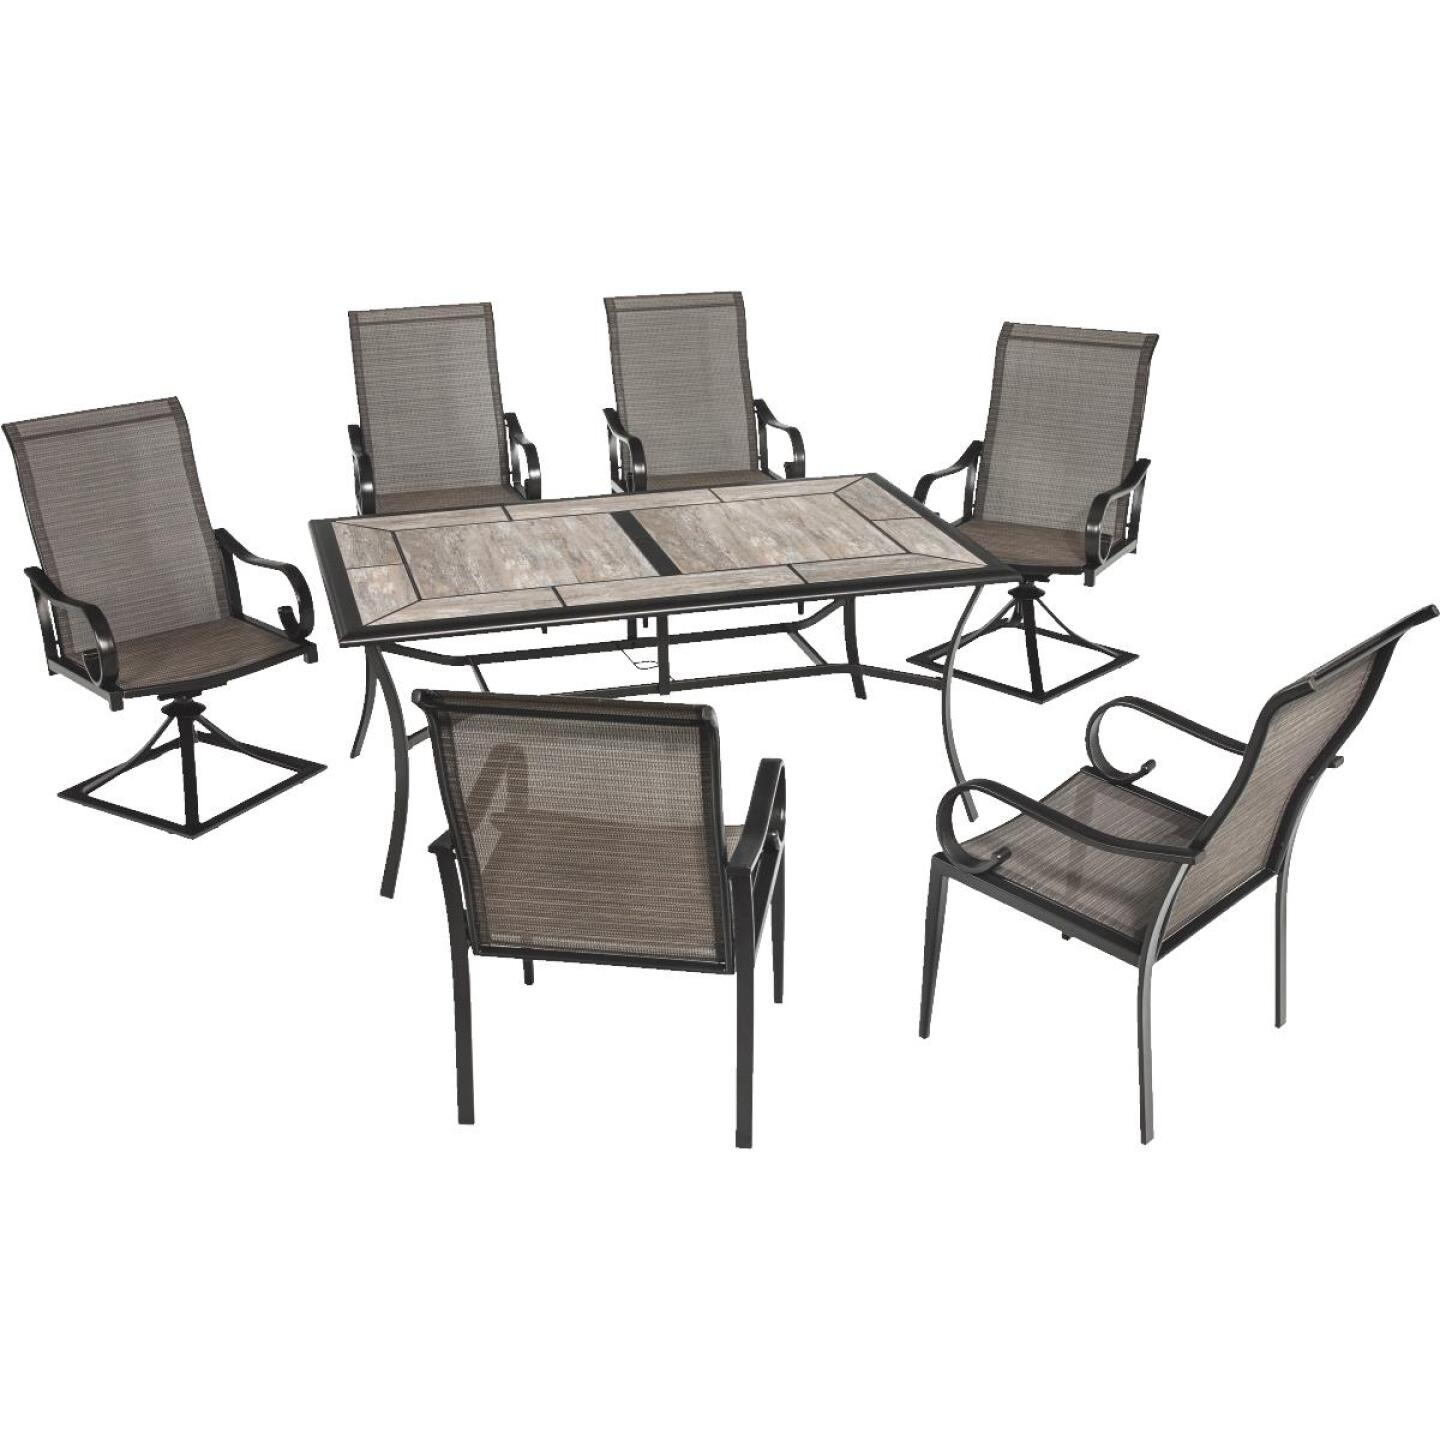 Outdoor Expressions Berkshire 7-Piece Dining Set Image 155